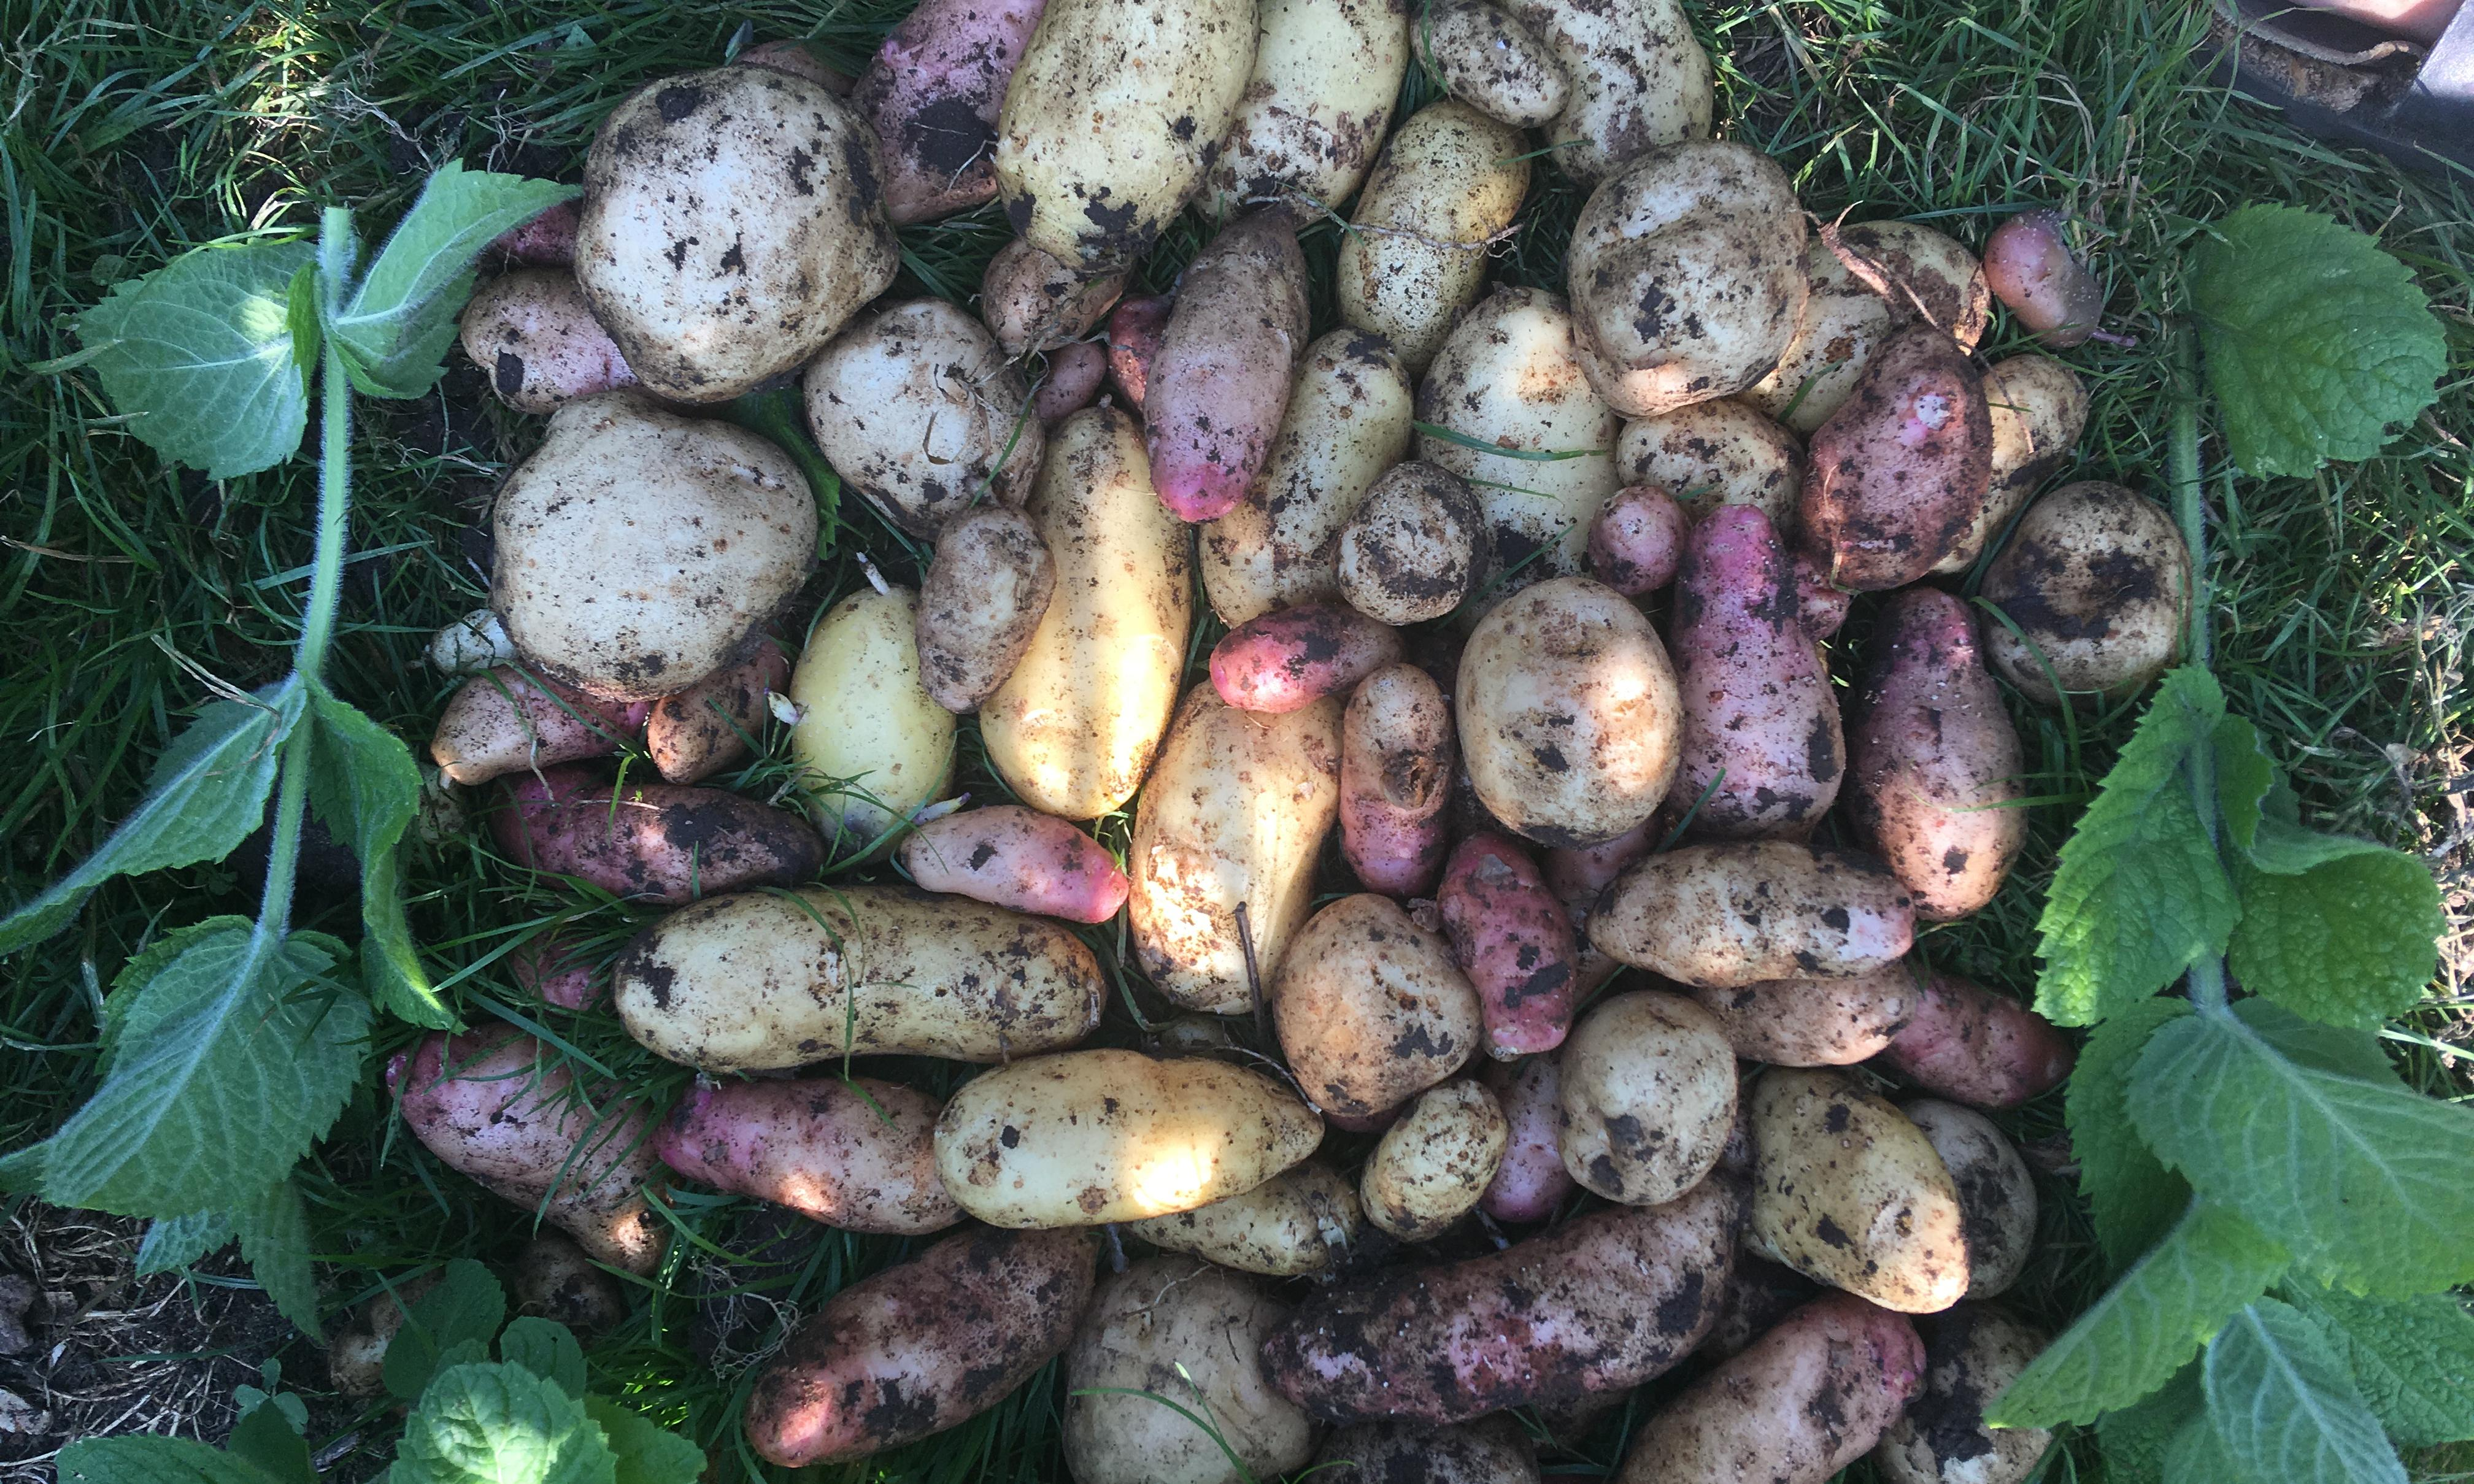 The magic of growing potatoes never fades